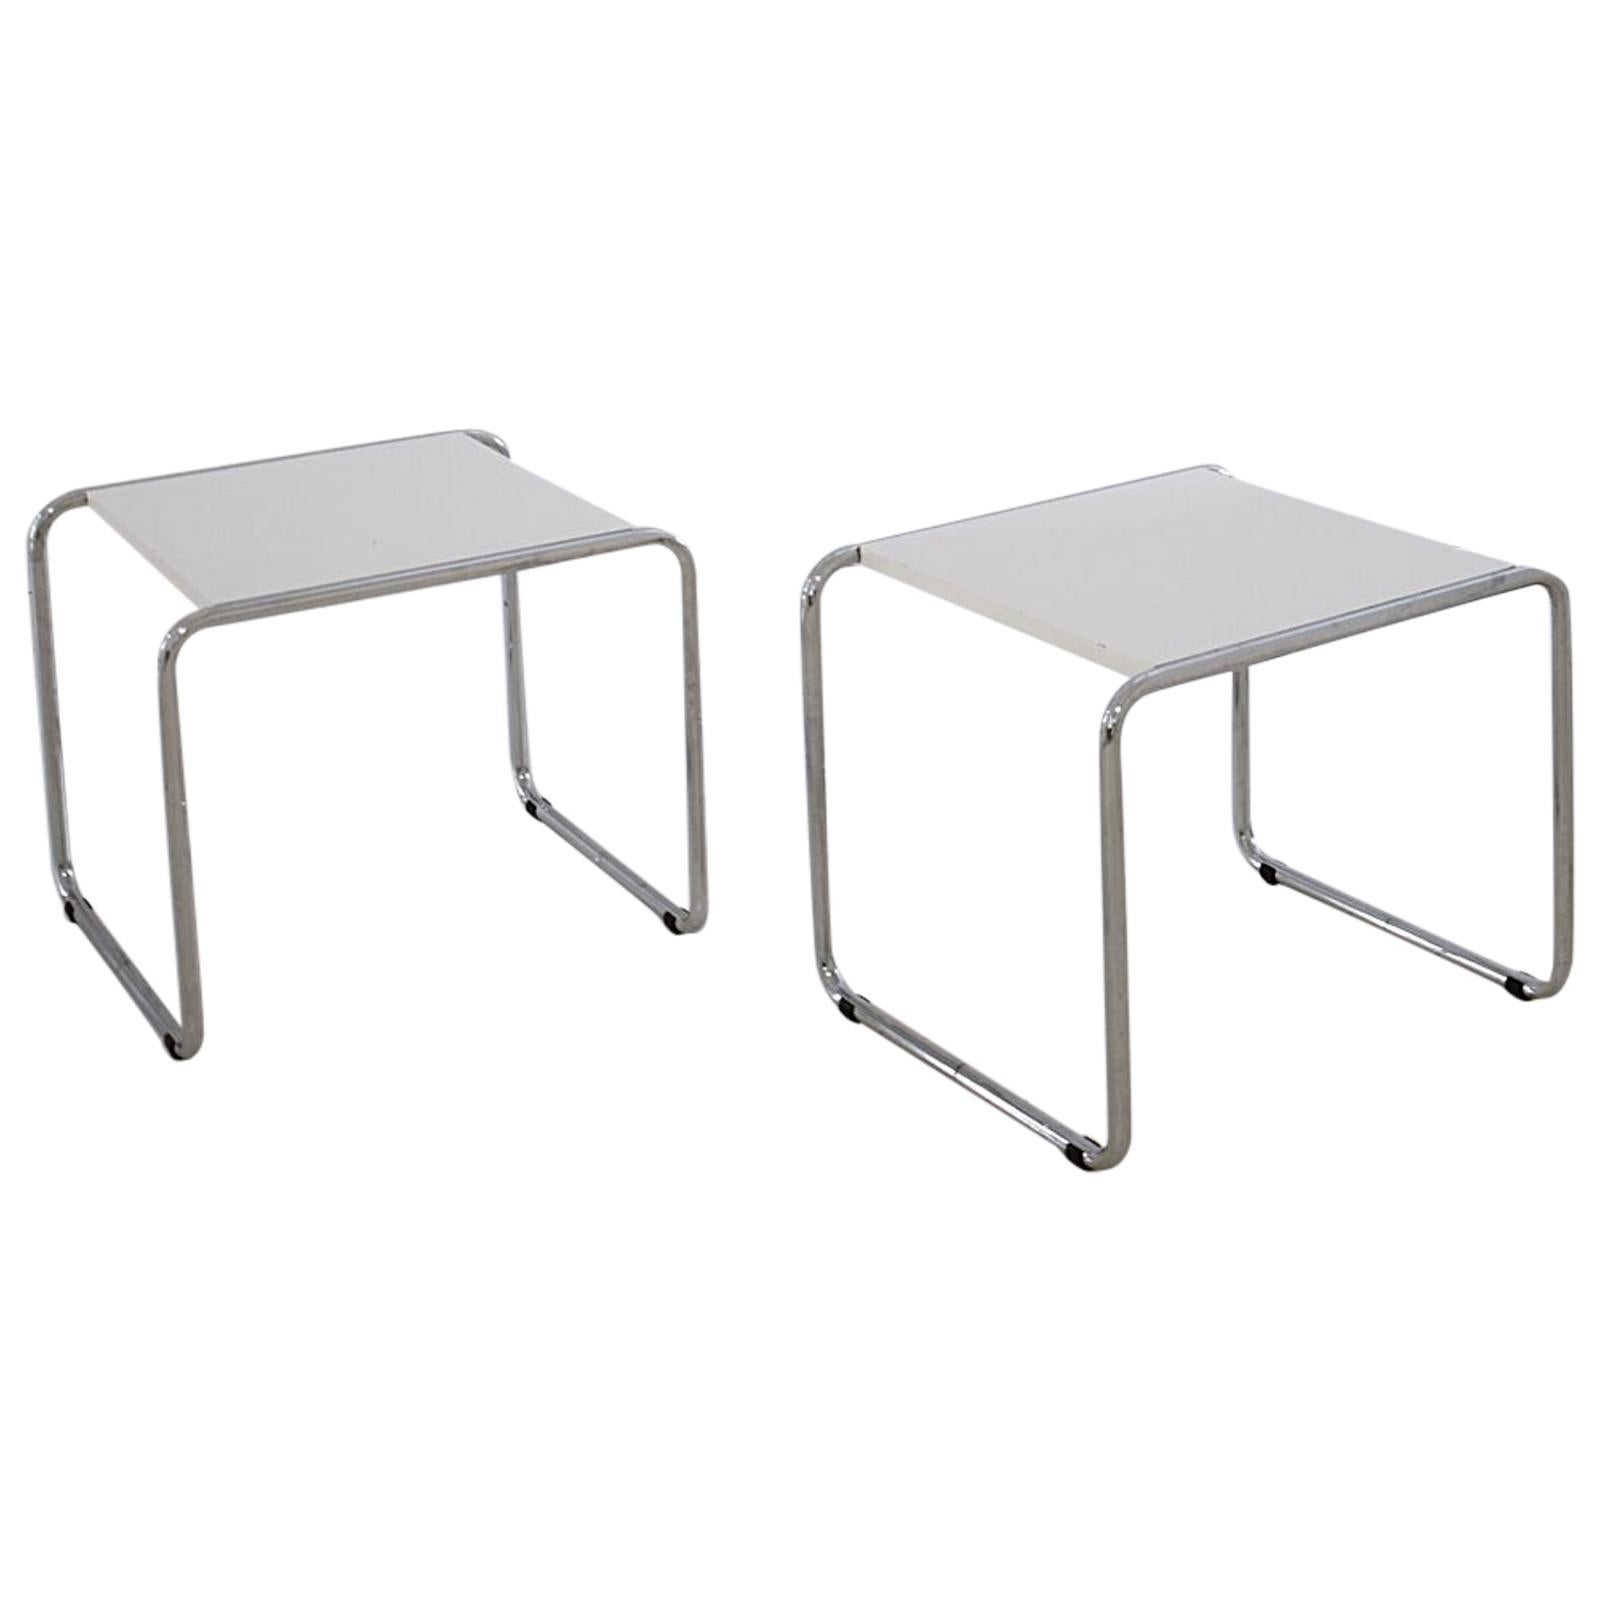 Pair of Bauhaus Tubular Side Tables after Marcel Breuer, Italy, 1990